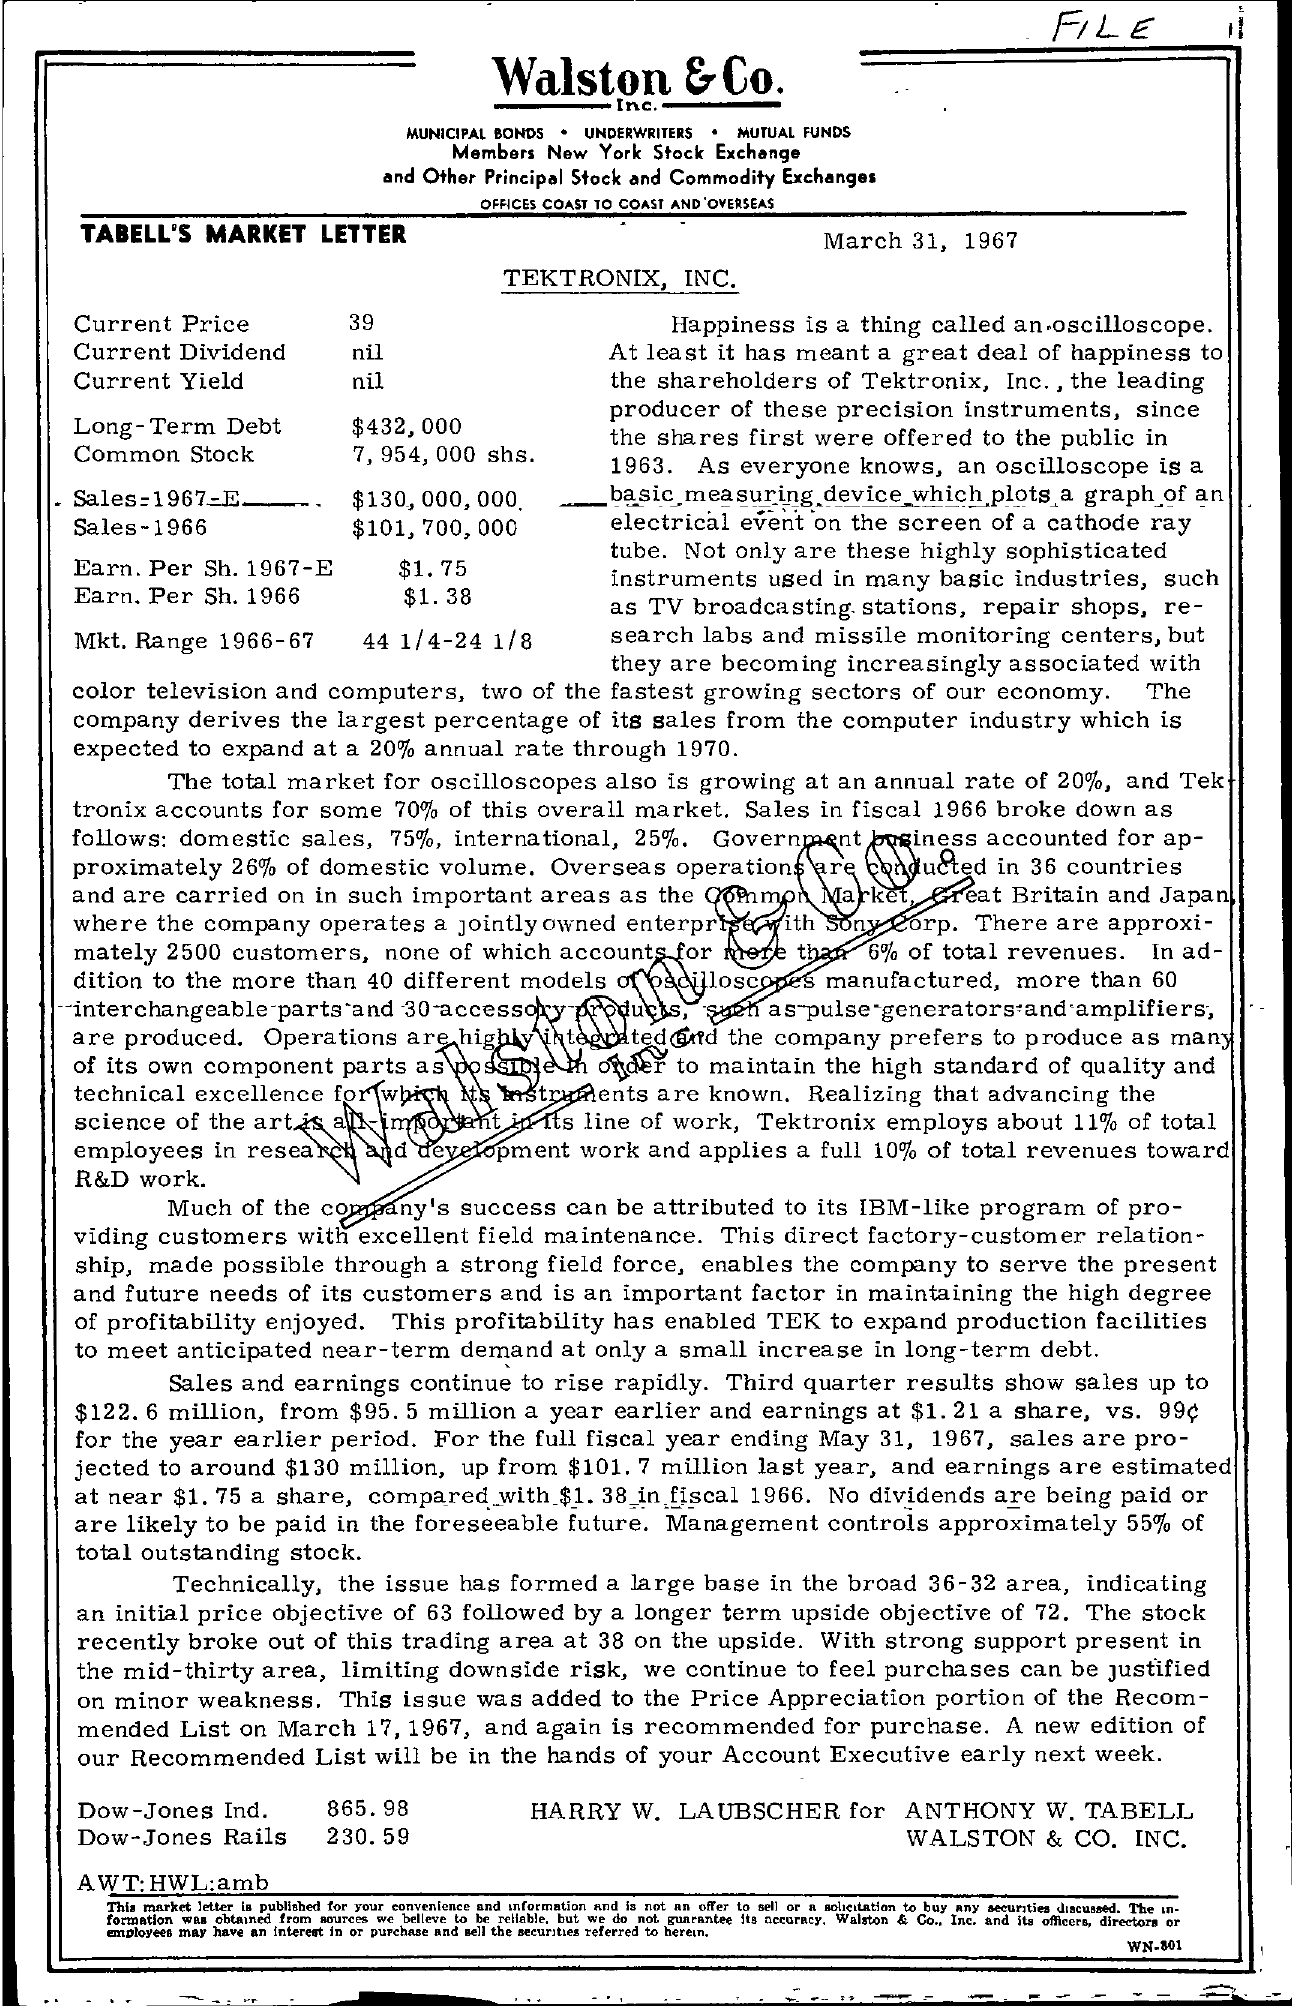 Tabell's Market Letter - March 31, 1967